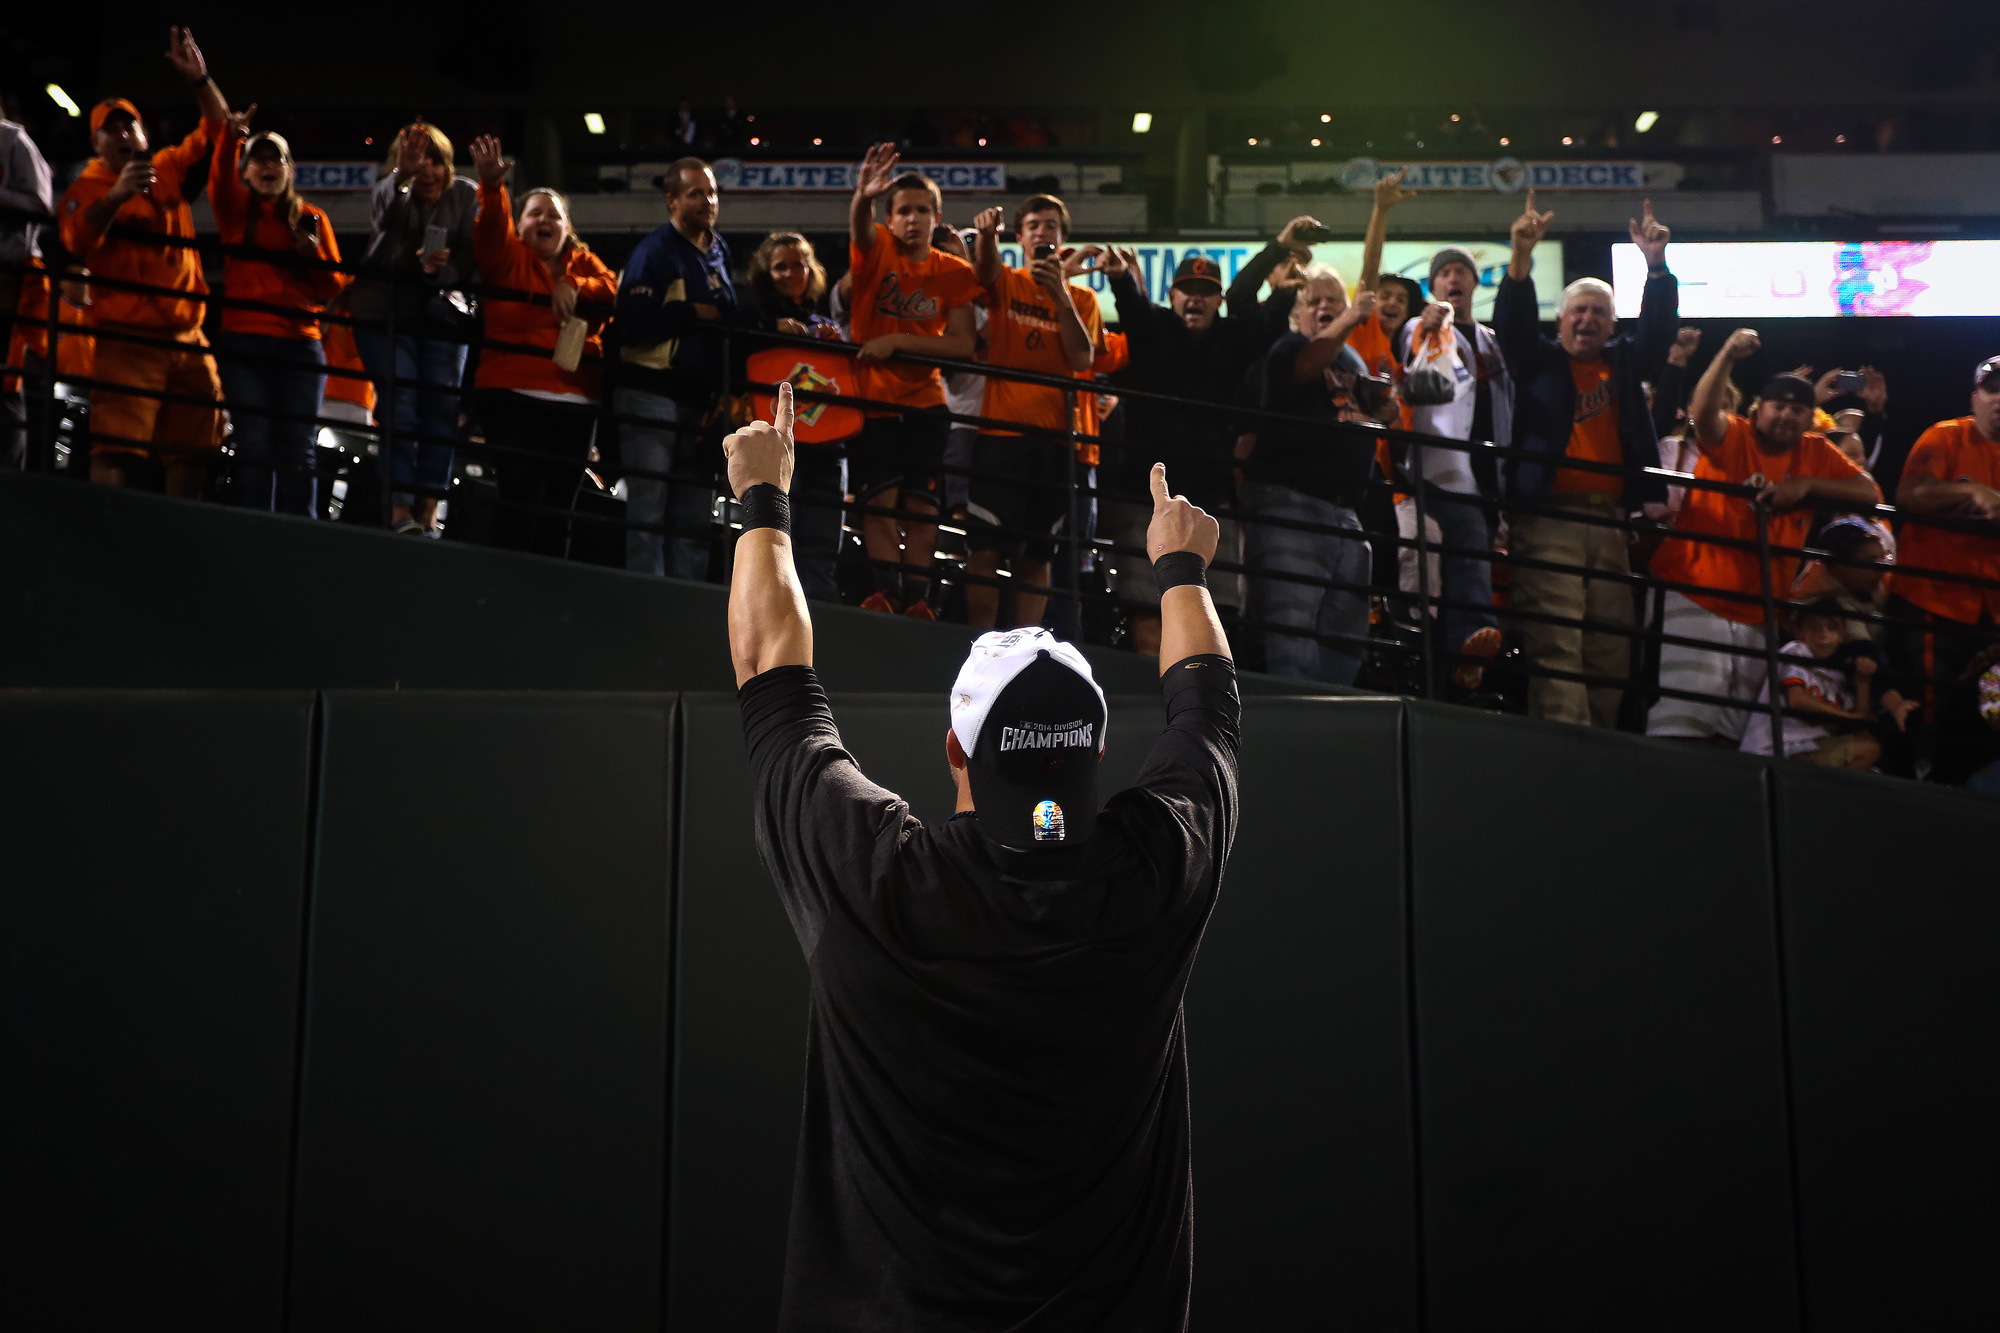 First baseman Steve Pearce of the Baltimore Orioles celebrates with fans after the Orioles defeated the Toronto Blue Jays to clinch the American League East Division at Oriole Park at Camden Yards in Baltimore, Maryland on Sept. 16, 2014.